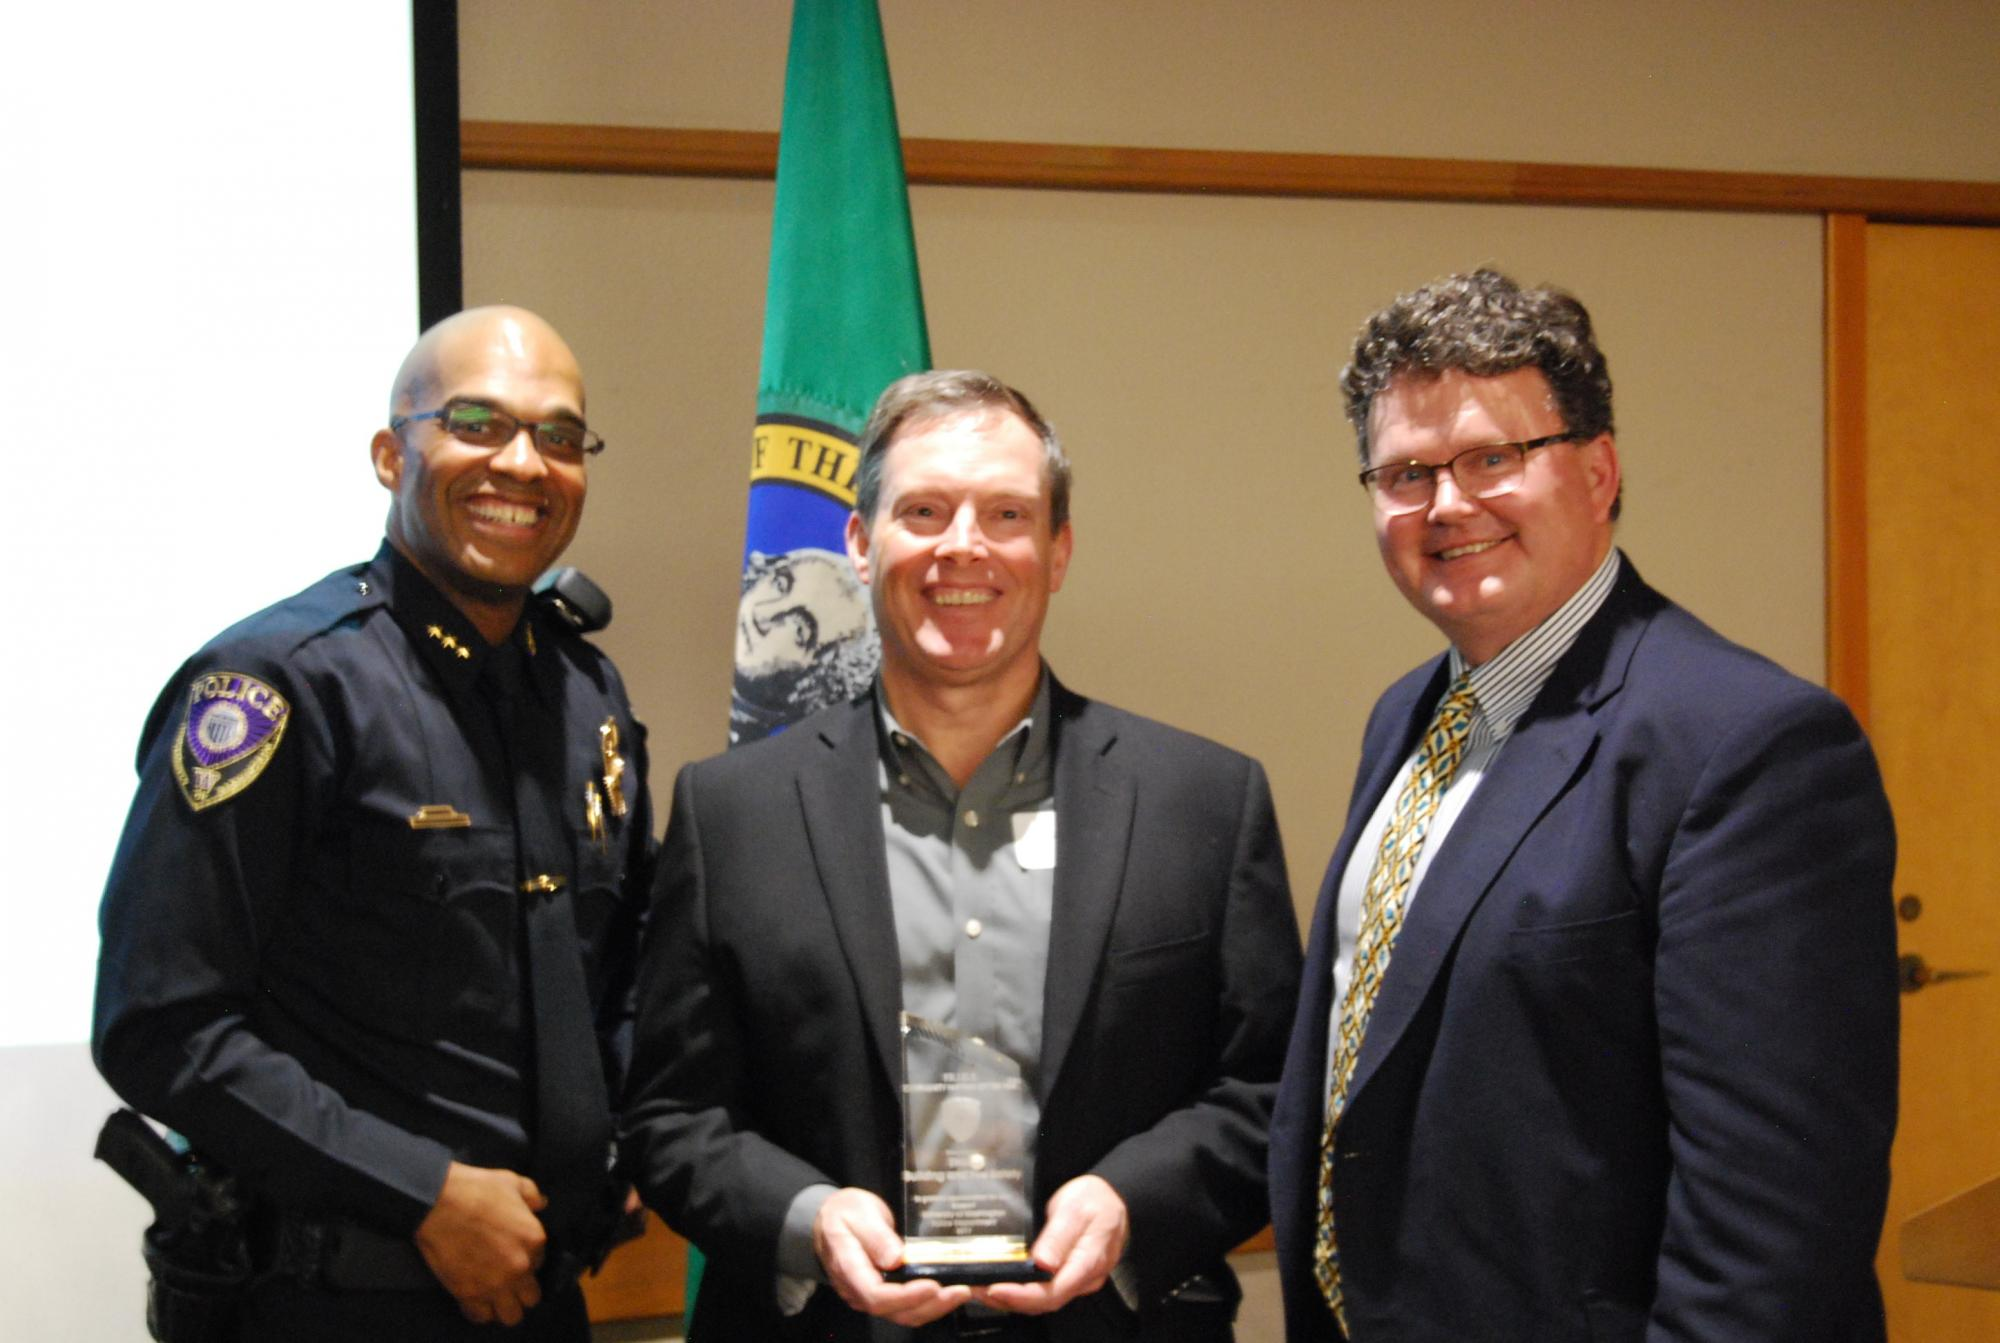 Mark and Scott accept UWPD award